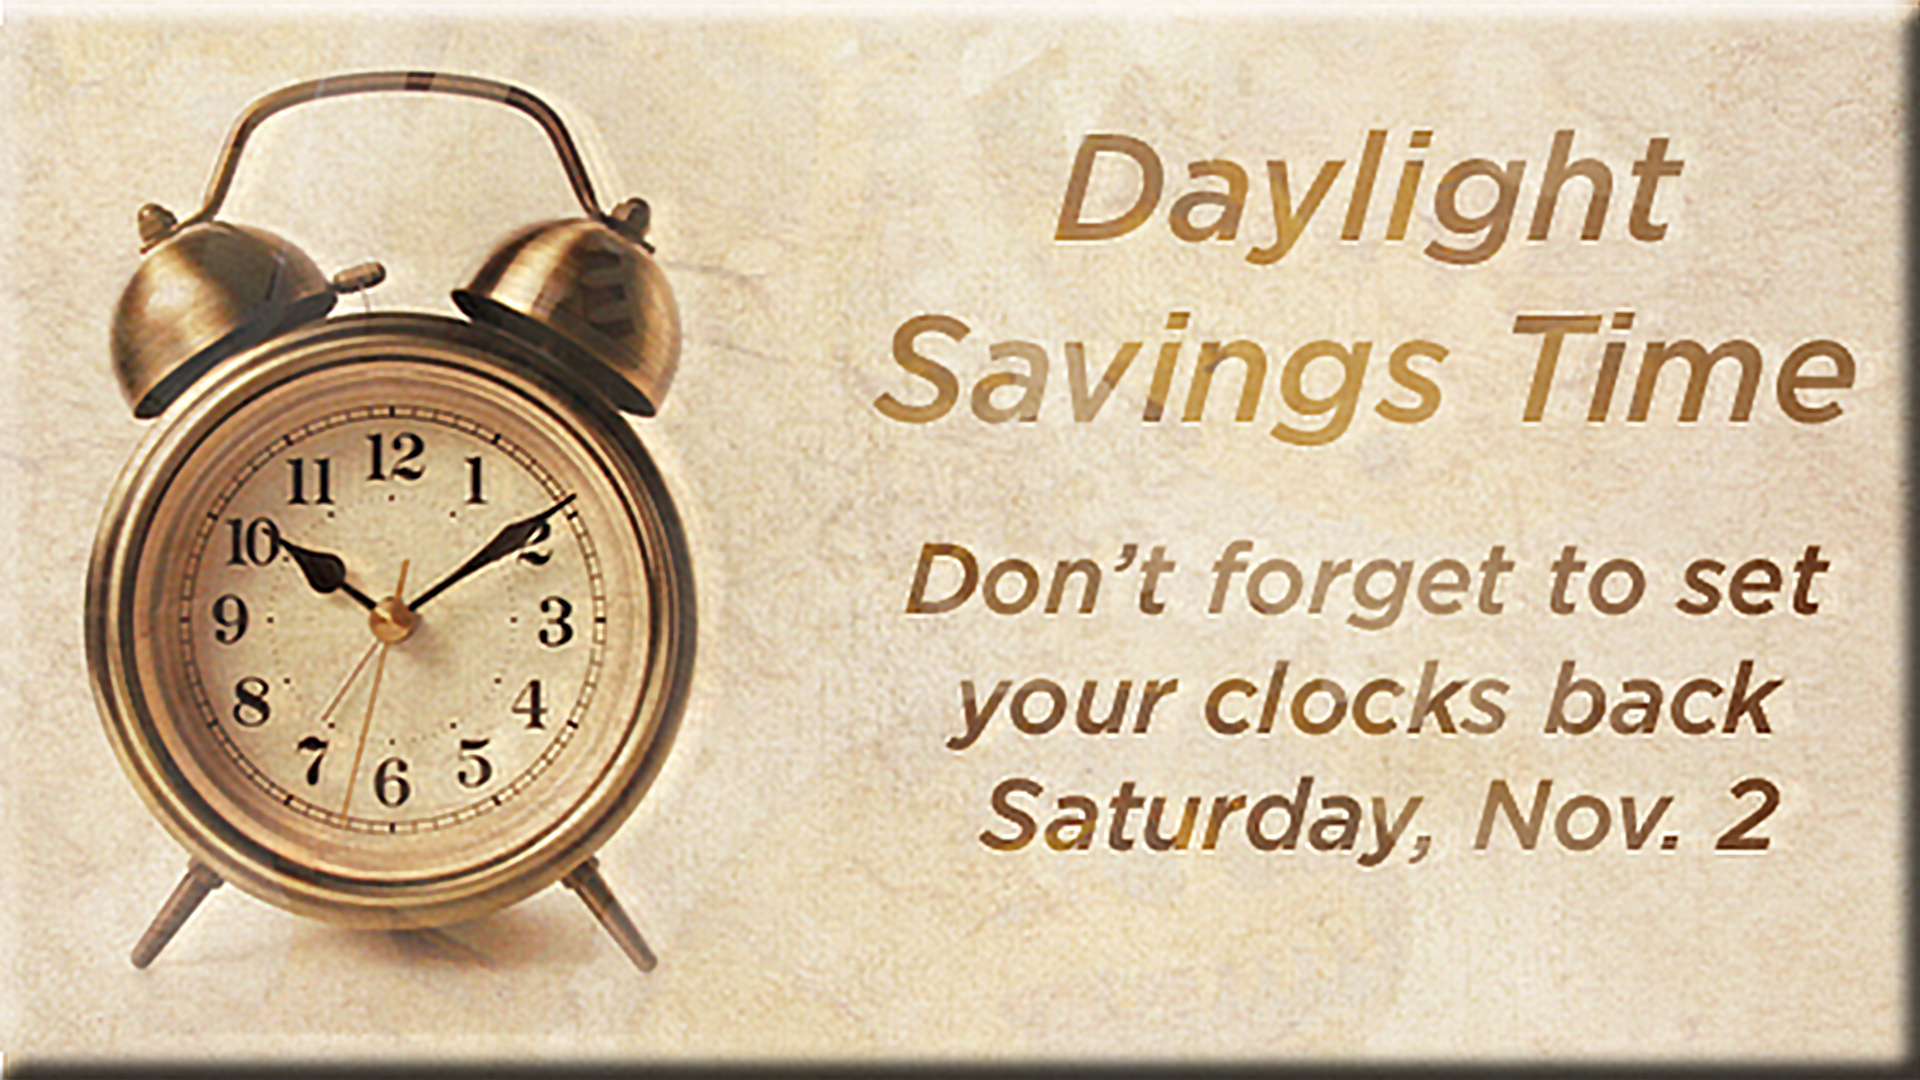 download Daylight Savings Time Fall Back 2017 2018 Best Cars 1920x1080